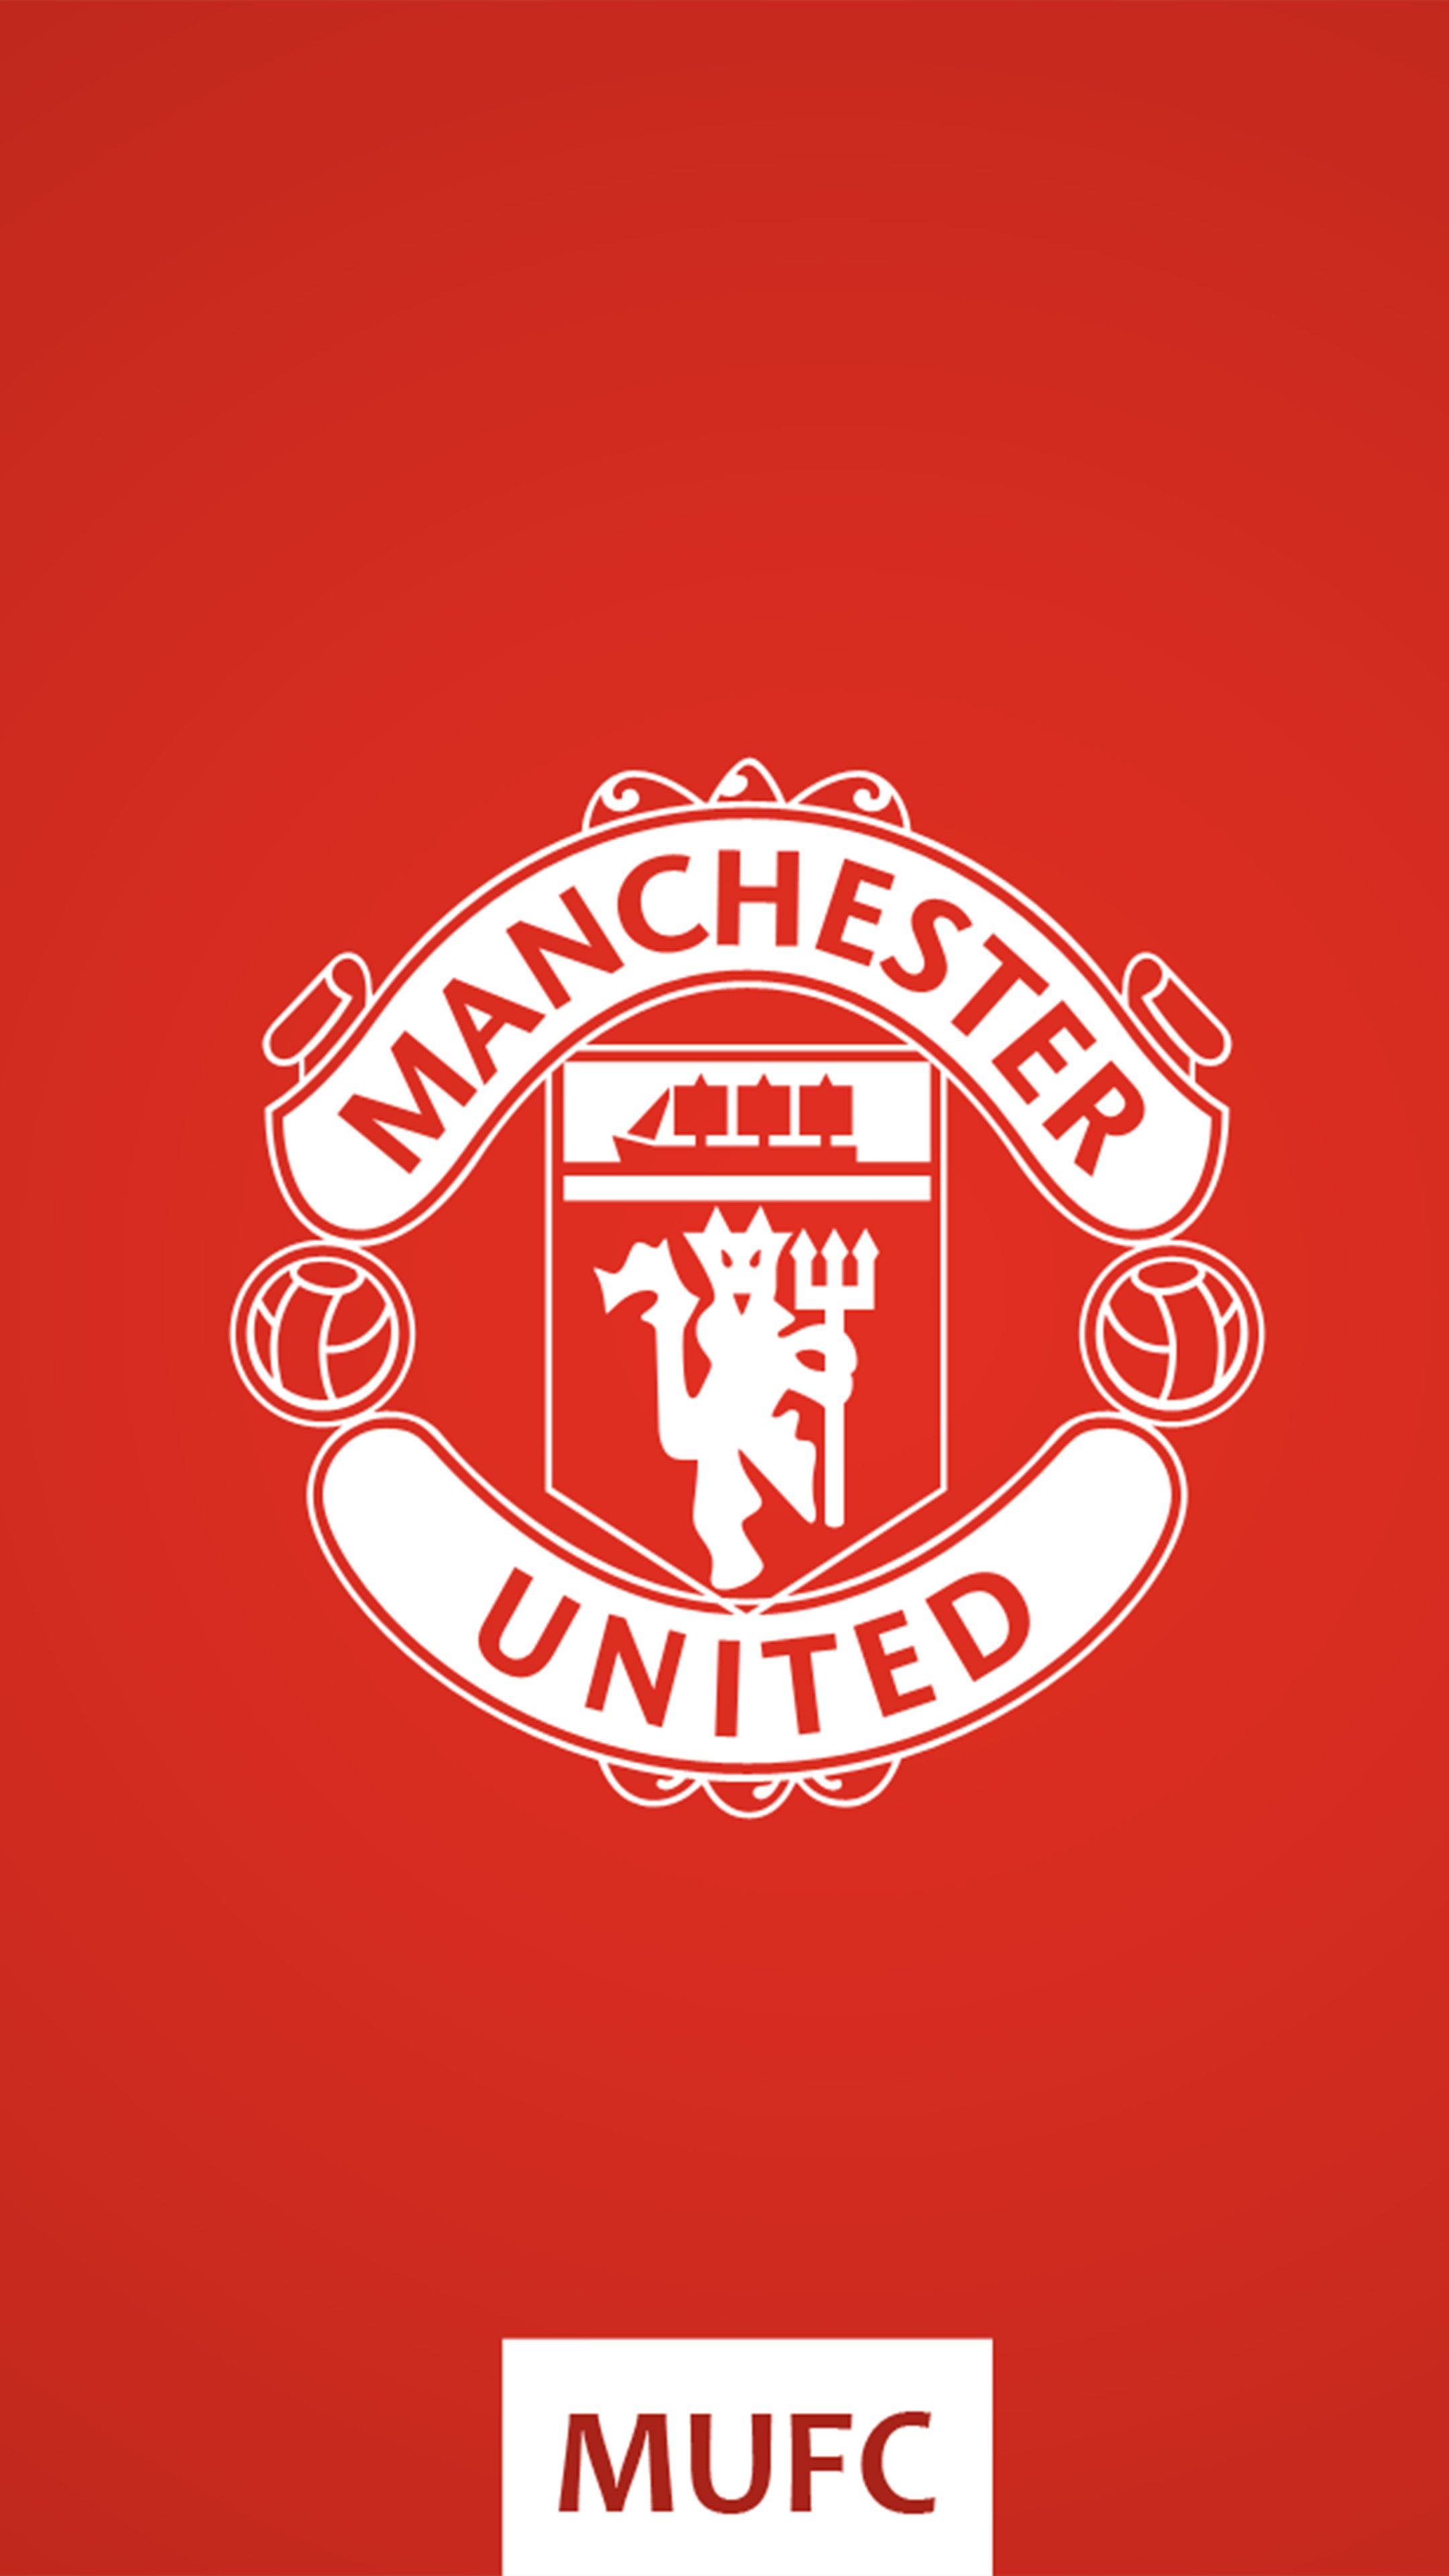 Manchester United Wallpaper Manchester United Wallpaper 4k